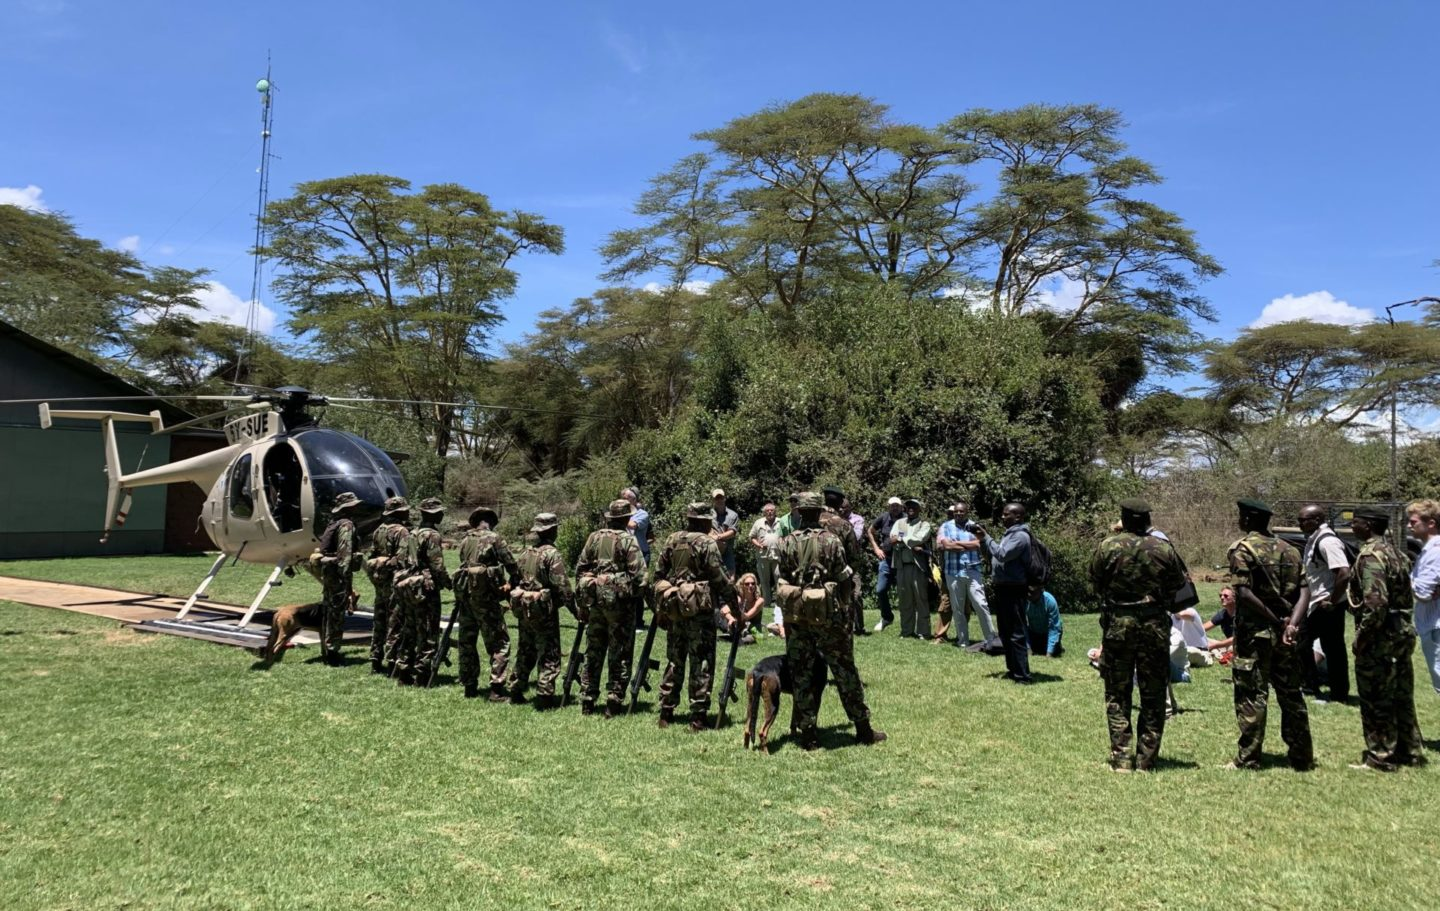 Symposium participants visiting the Lewa Wildlife Conservancy